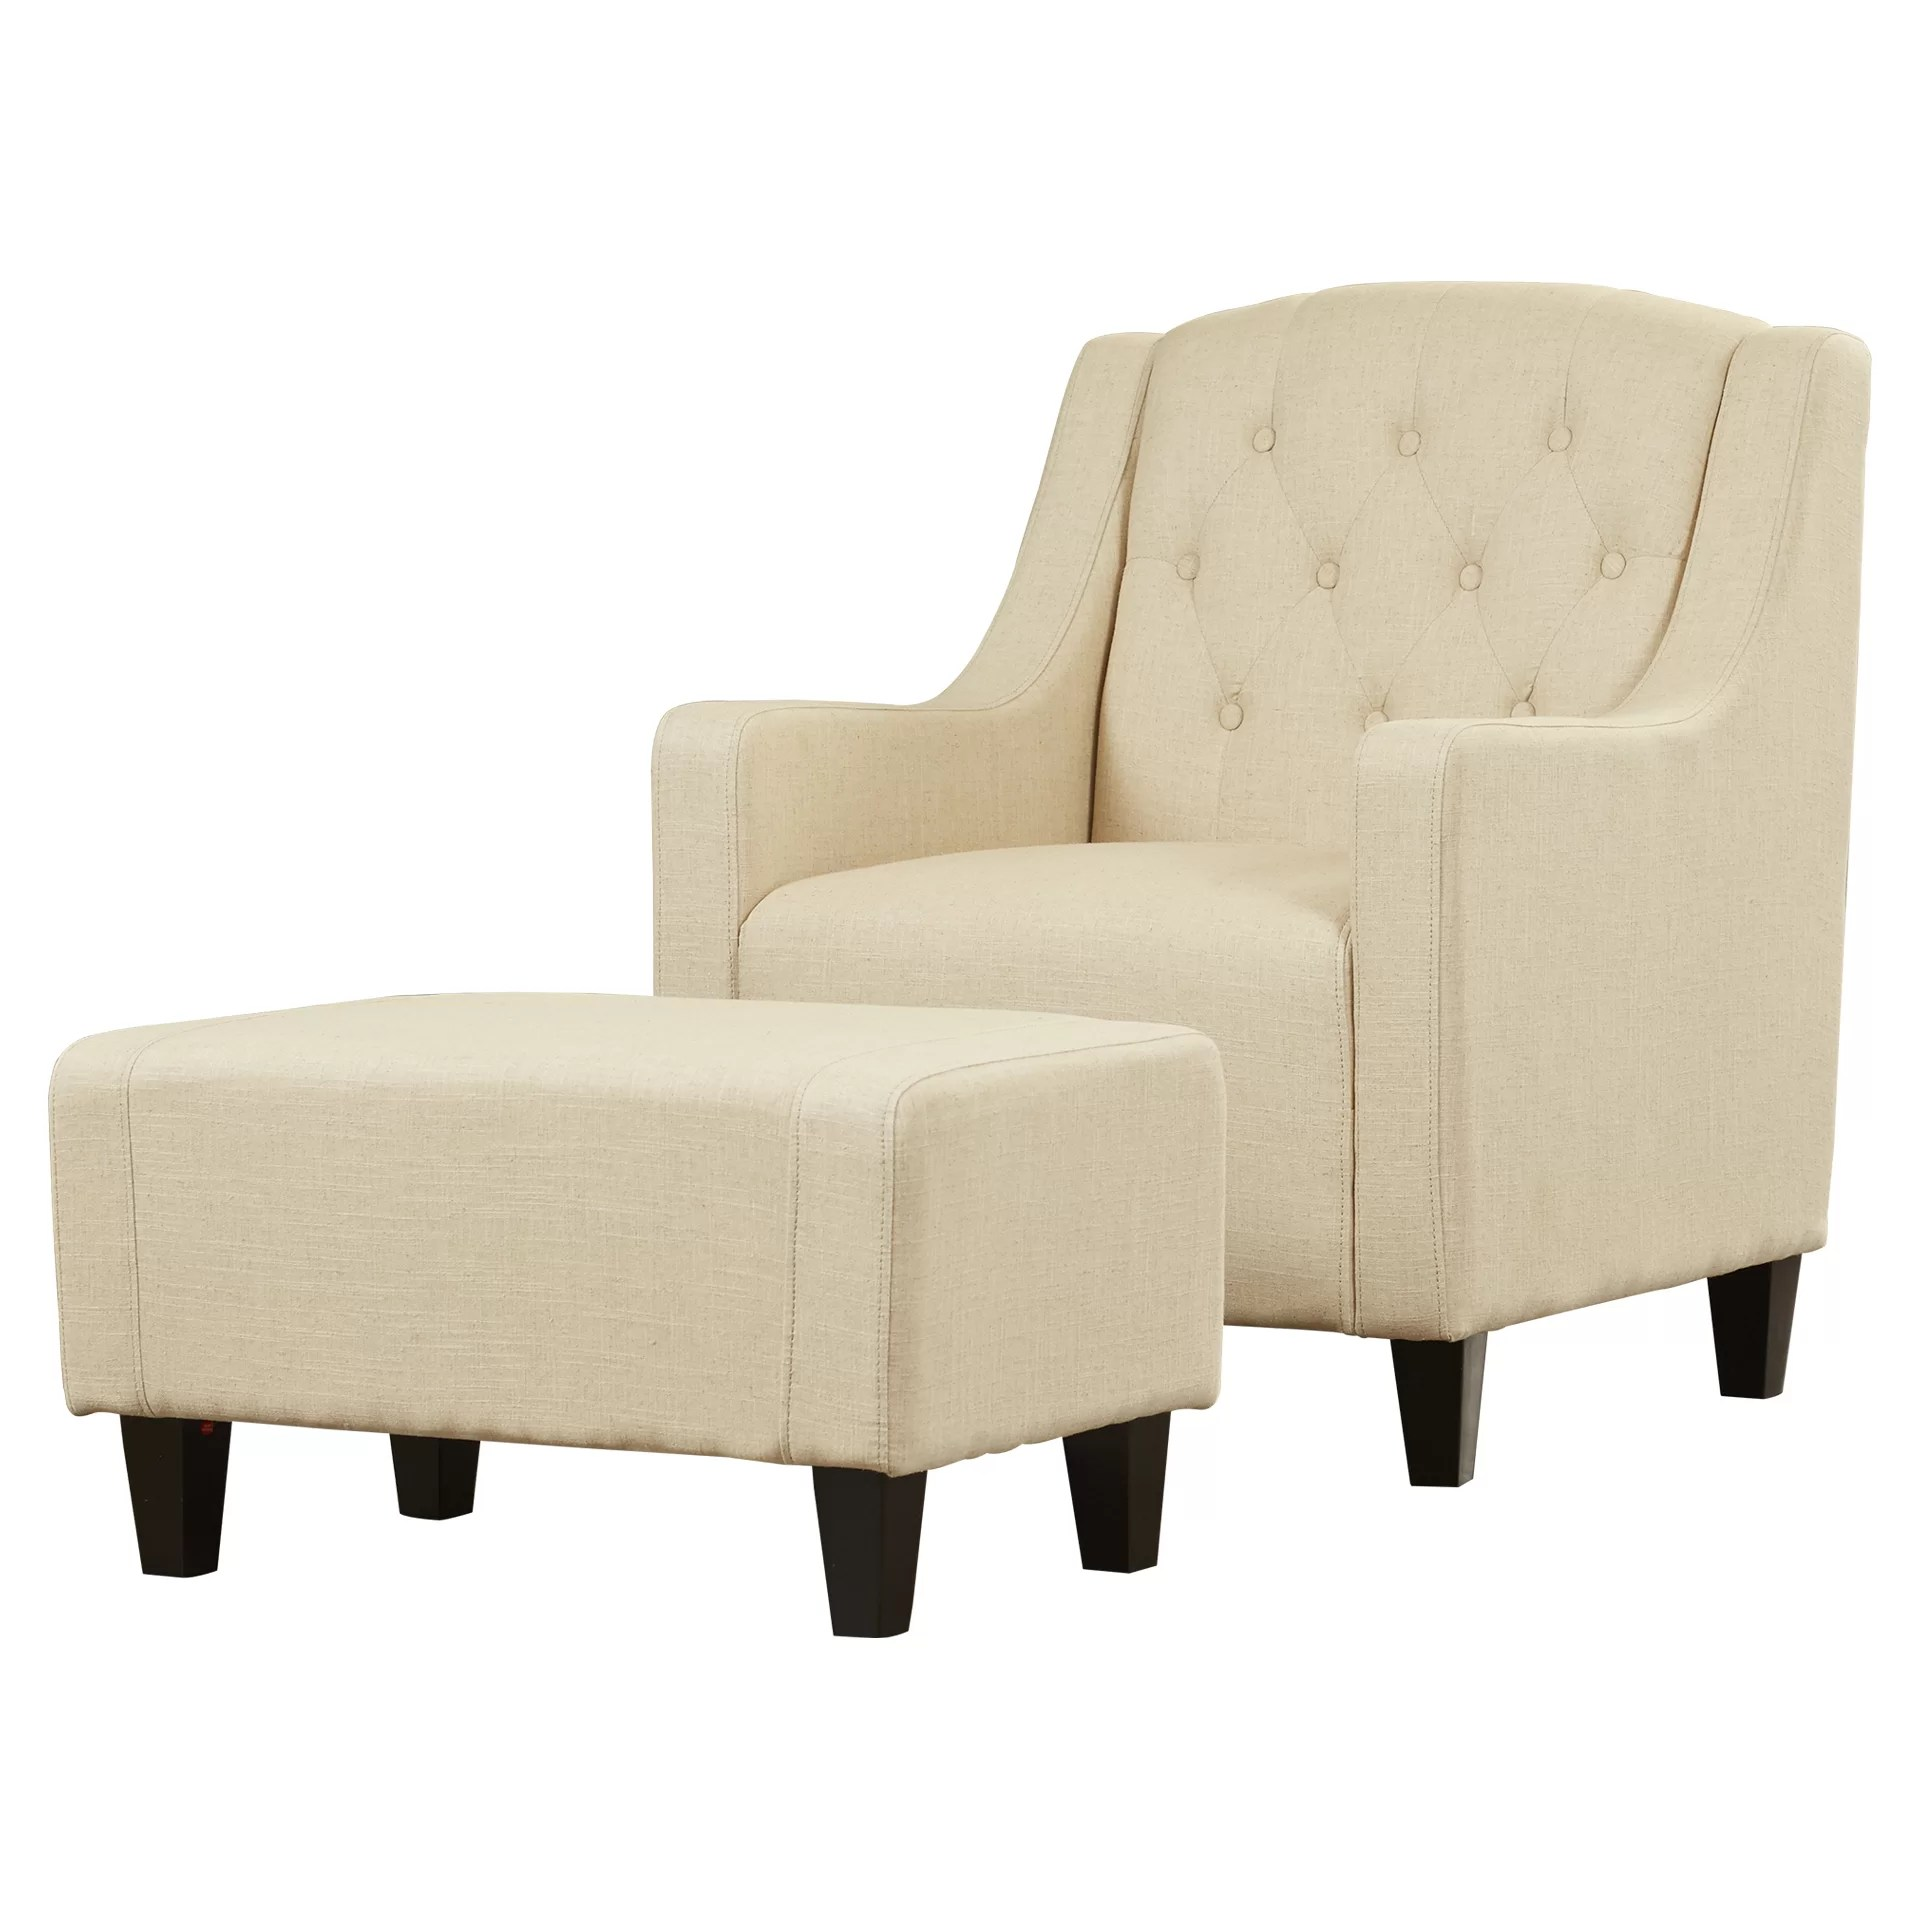 Upholstered Club Chair Three Posts Simpson Upholstered Club Arm Chair With